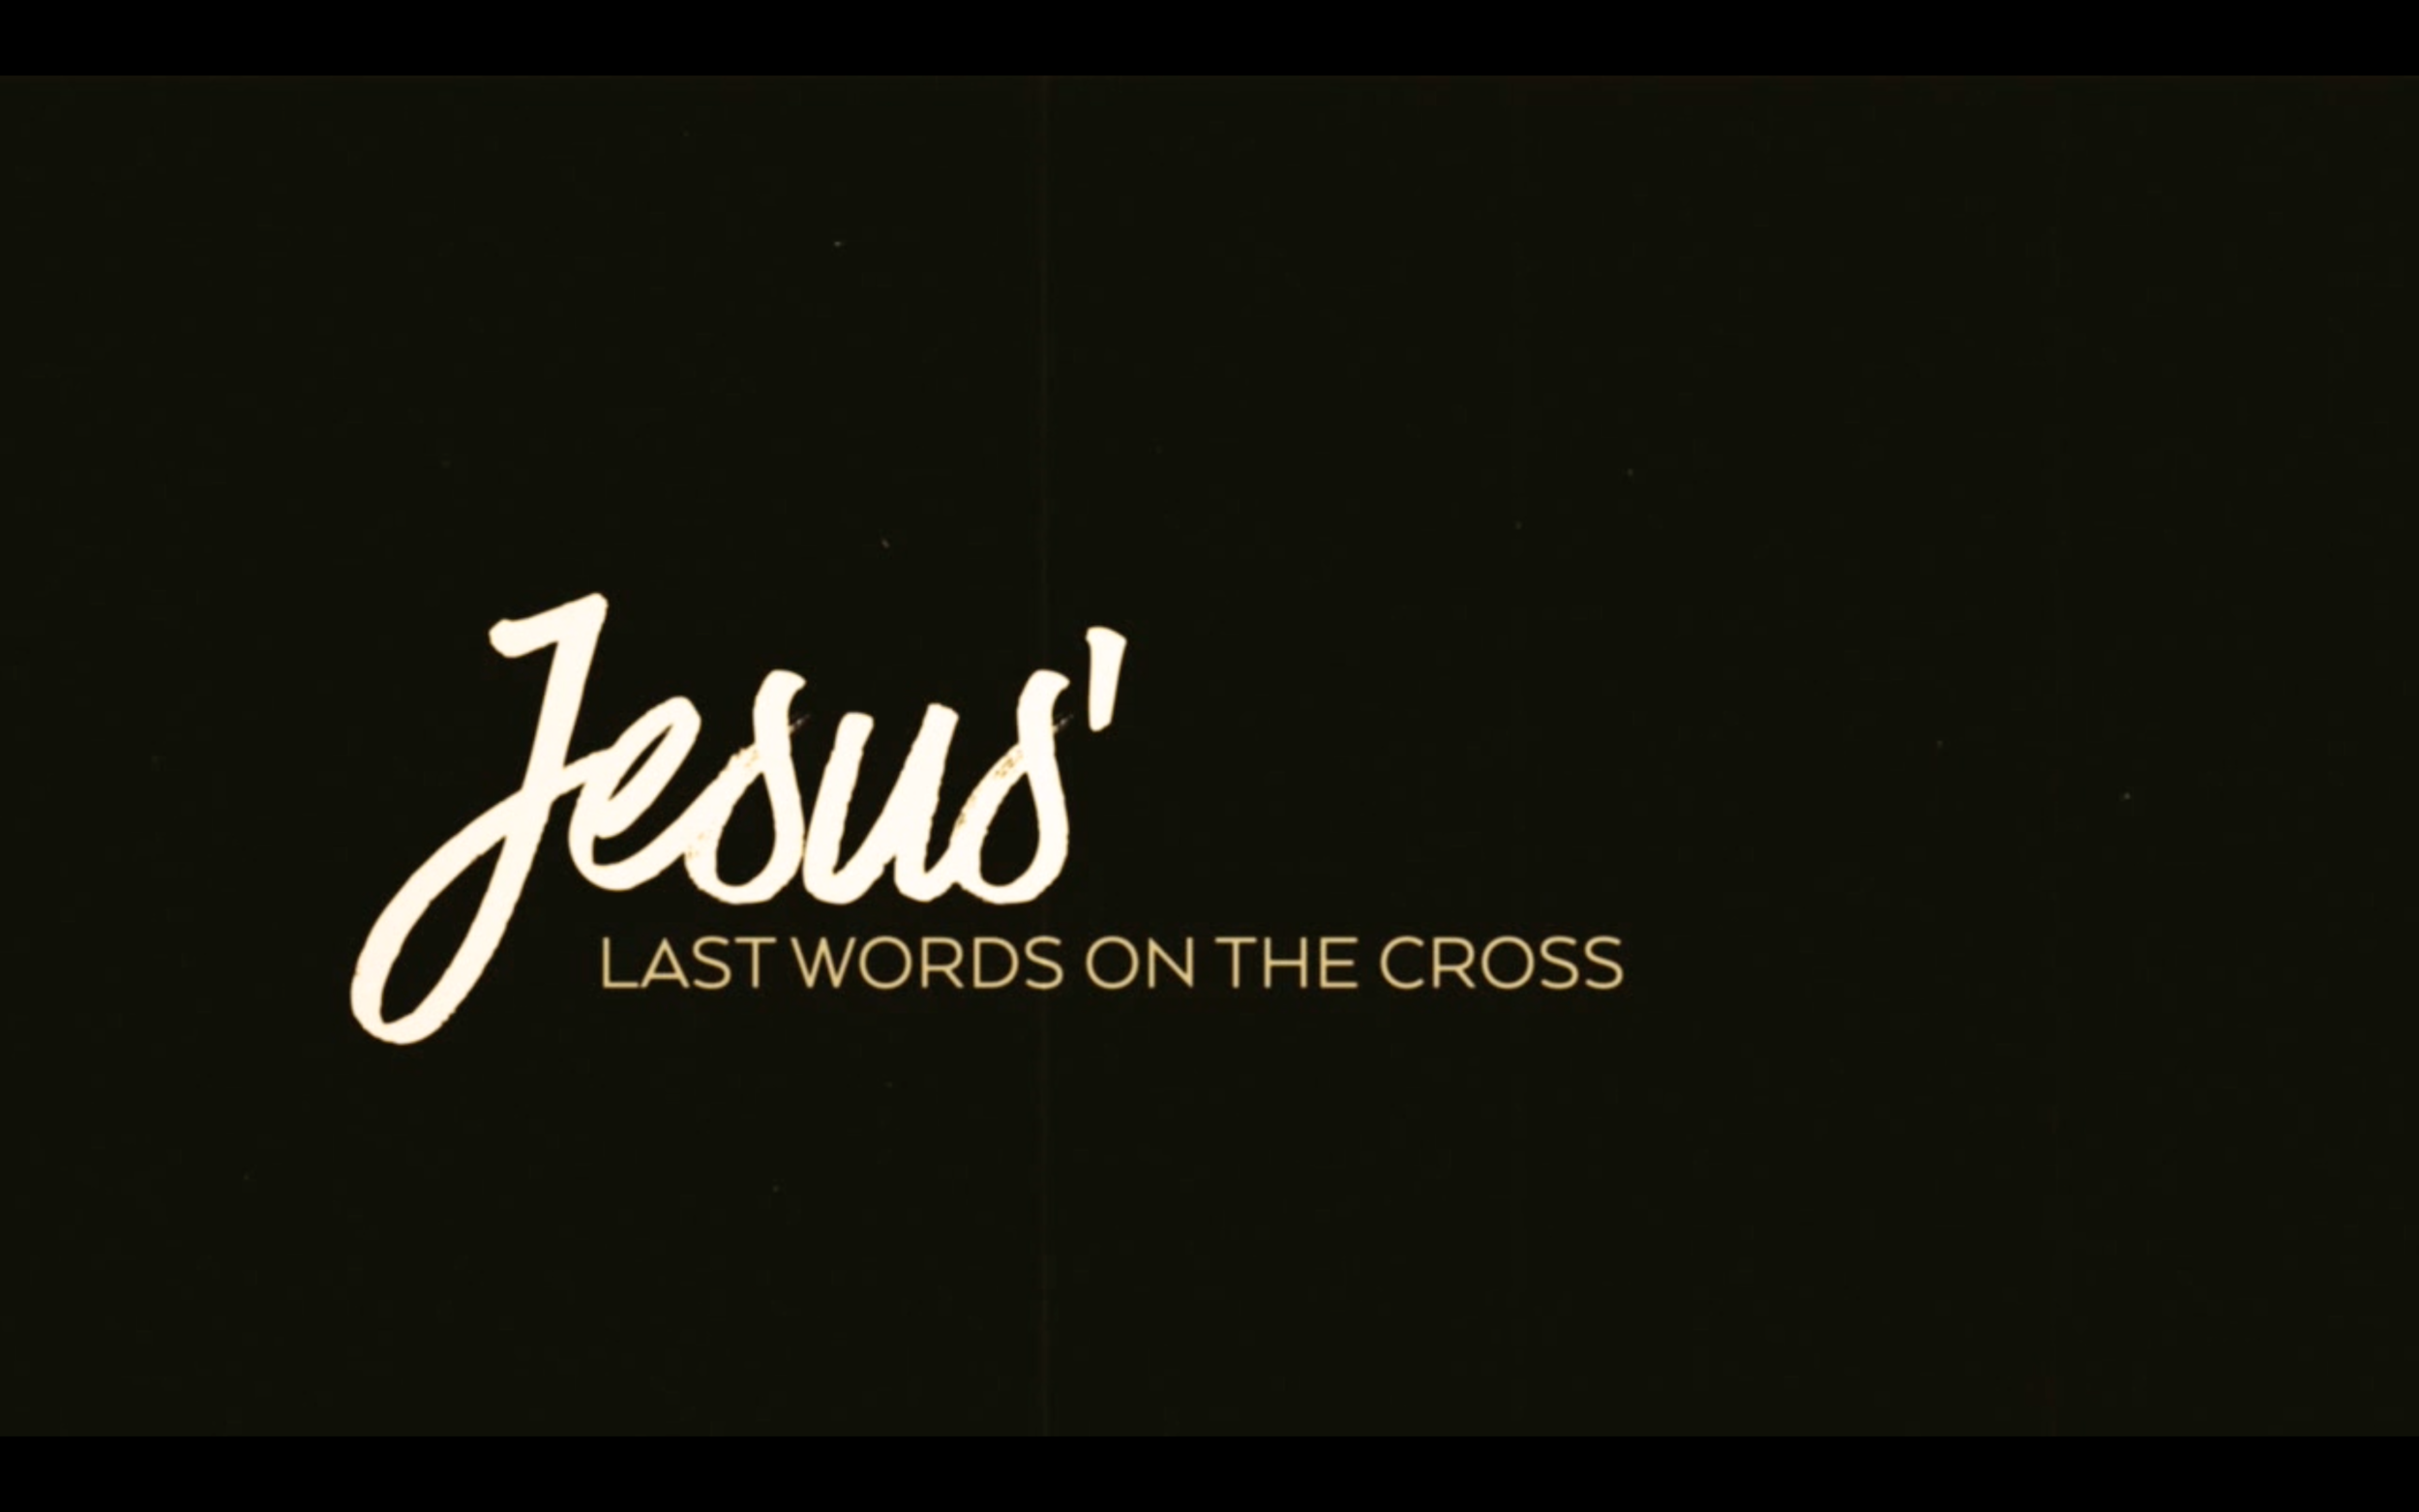 jesus-last-words-title.png